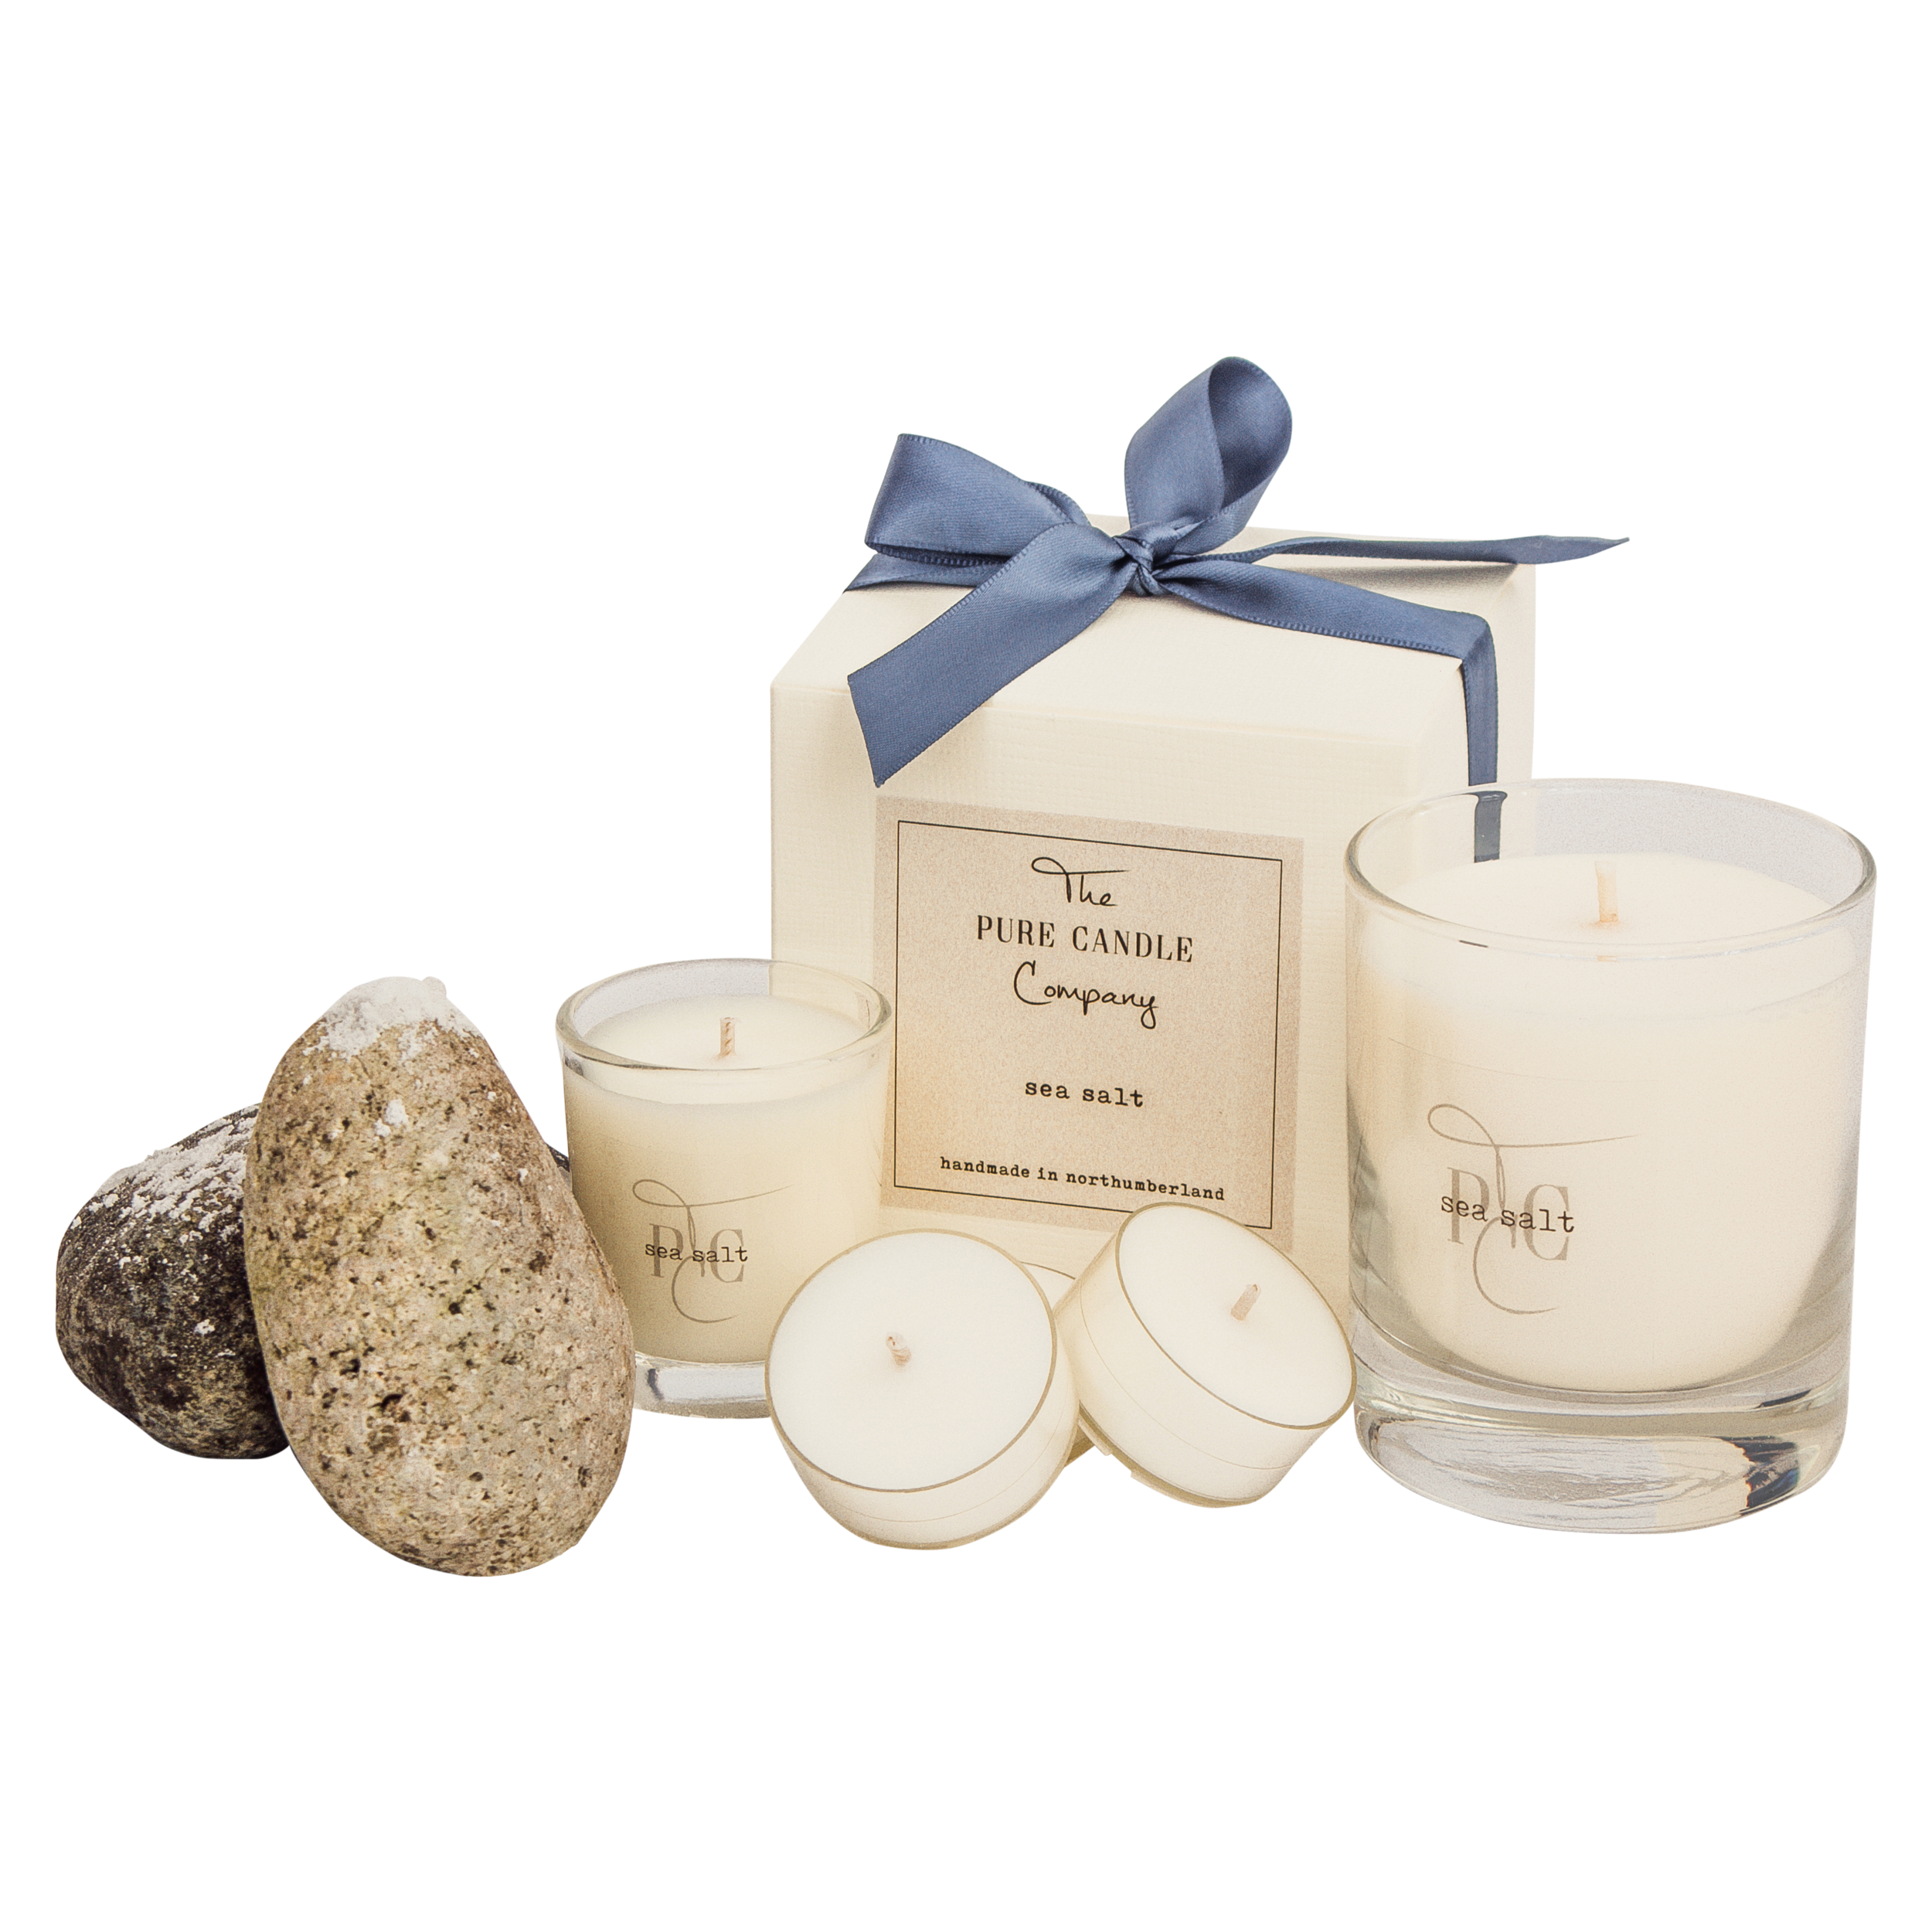 The Pure Candle Company Sea Salt soy wax candle. Our 100% soy wax candles are eco-friendly, clean burn candles, handmade in the UK, hand-poured into glass jars.